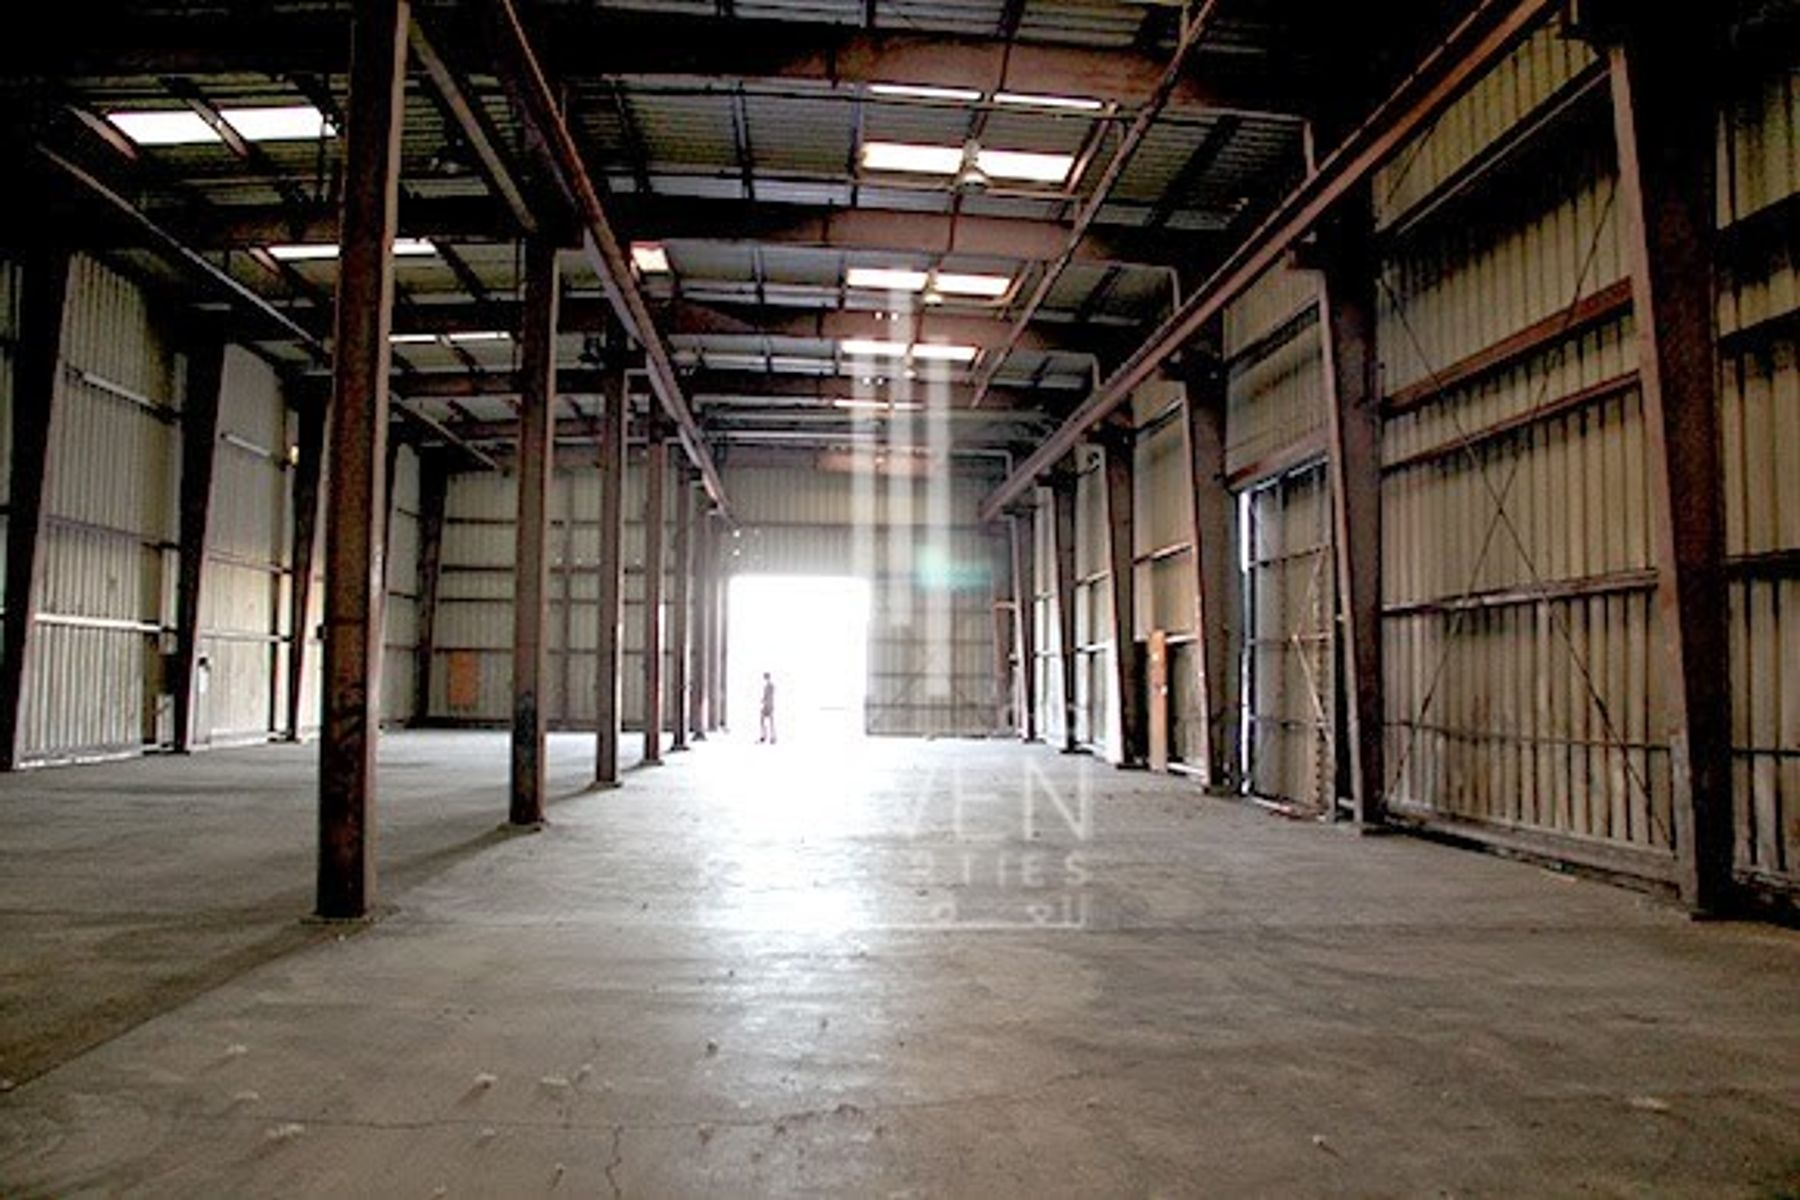 For Rent Semi Fitted Warehouse in Jafza.